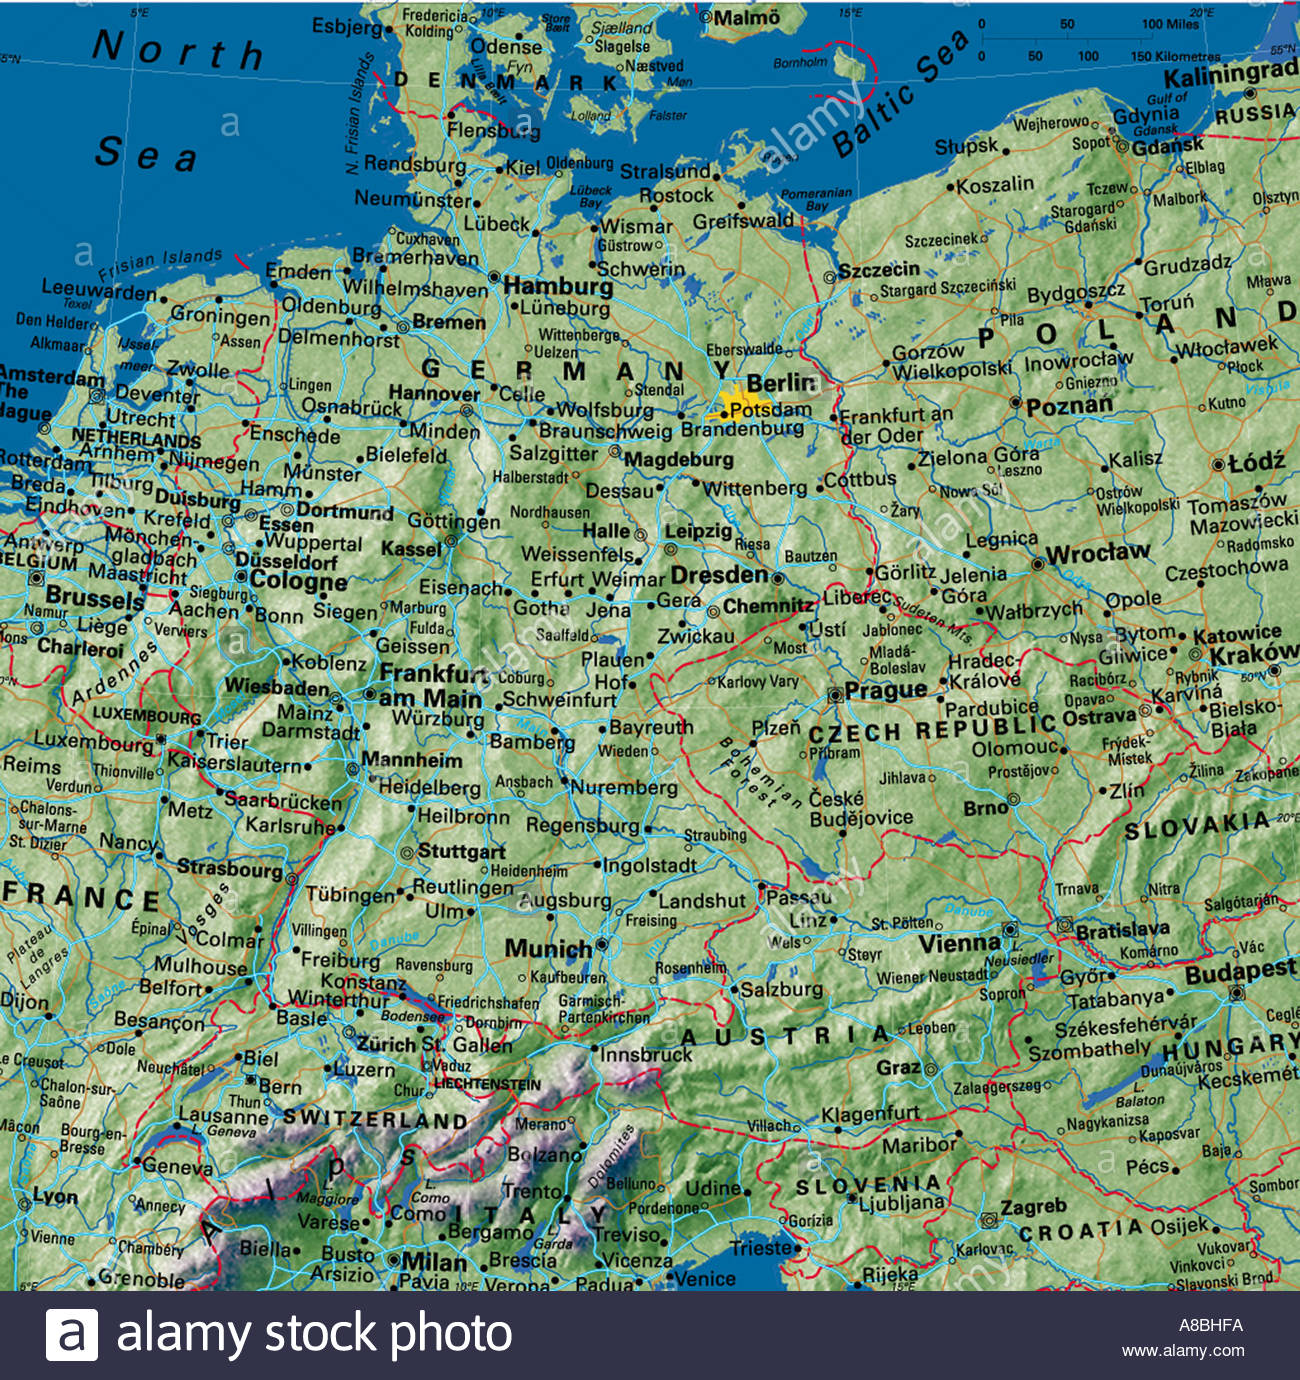 map maps europe netherland belgium germany austria poland